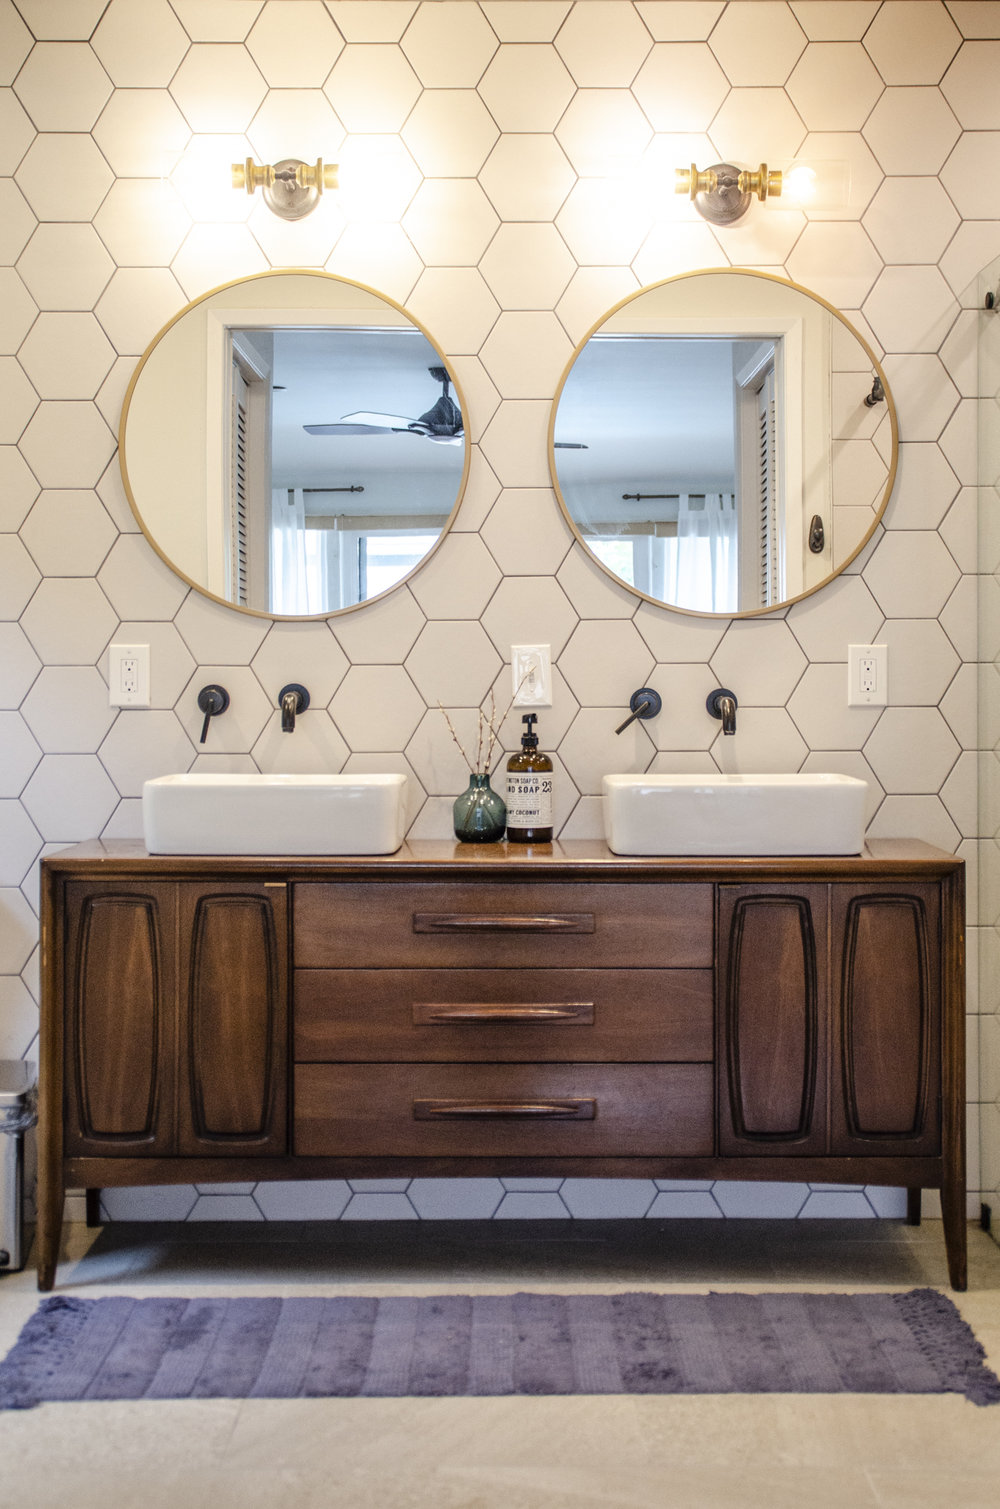 Hexagon tile (splurge) and faux brass mirrors (un-splurge)